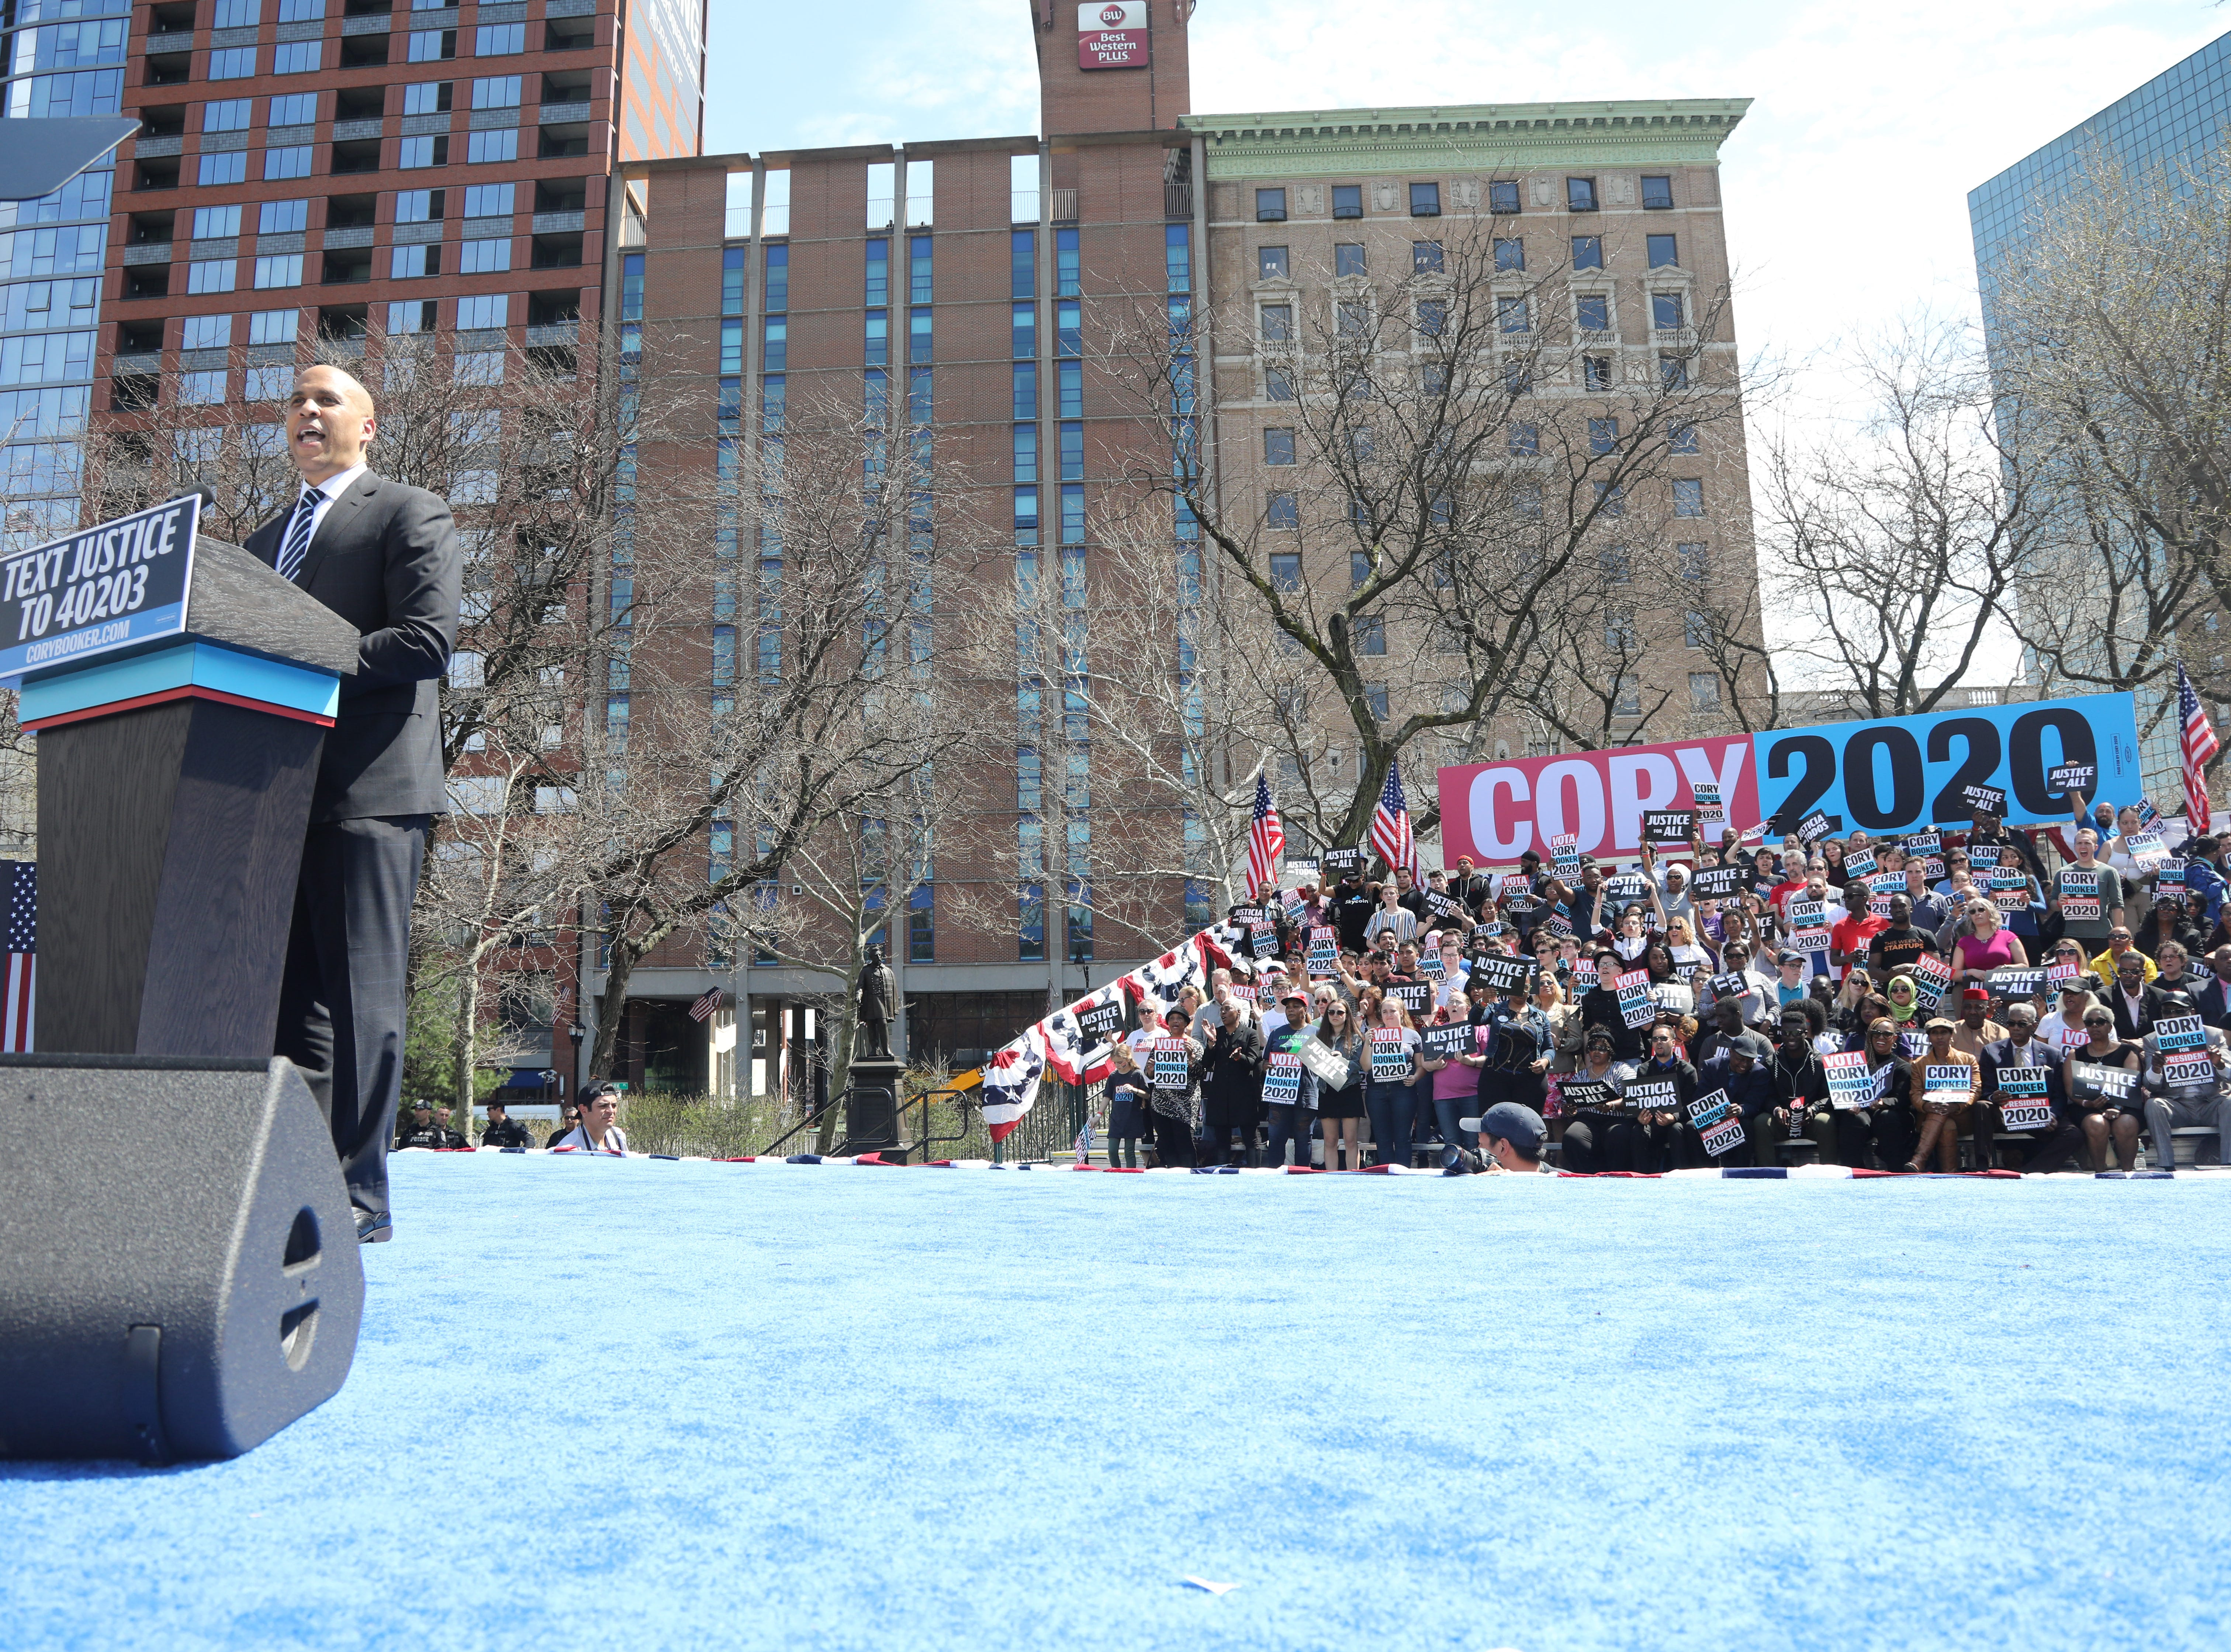 Senator Cory Booker addresses a supporters at a rally to kick off the Cory Booker campaign for president that was held at Military Park in Newark on April 13, 2019.